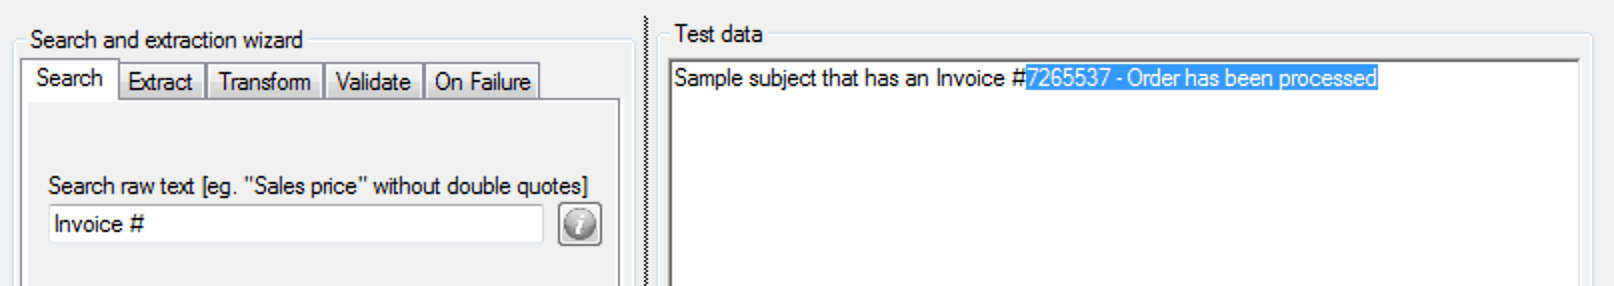 extract data - specify Search text